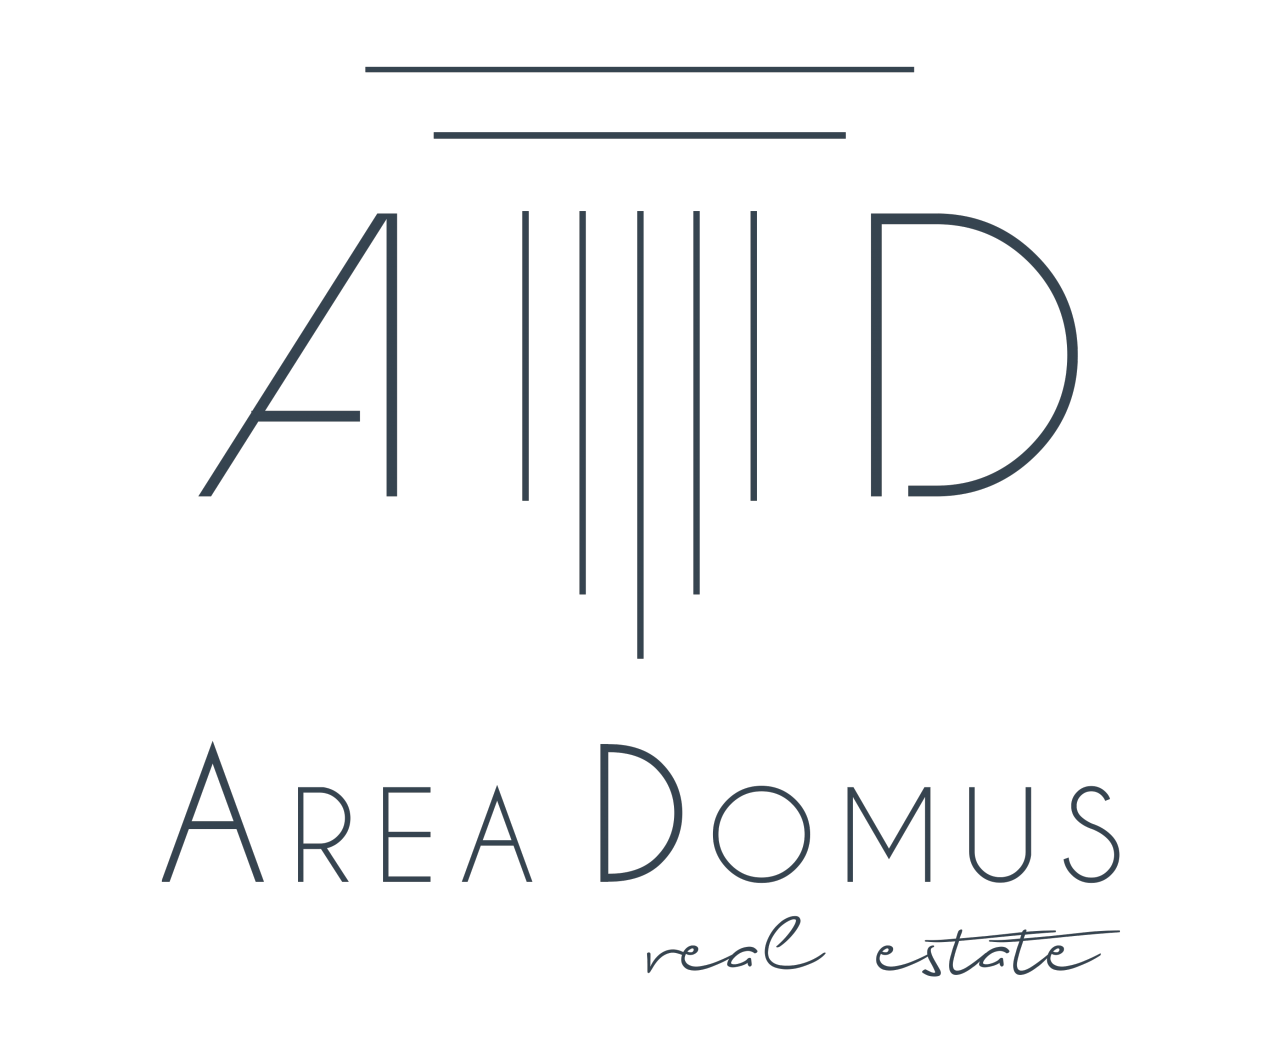 Area Domus Real Estate Srl